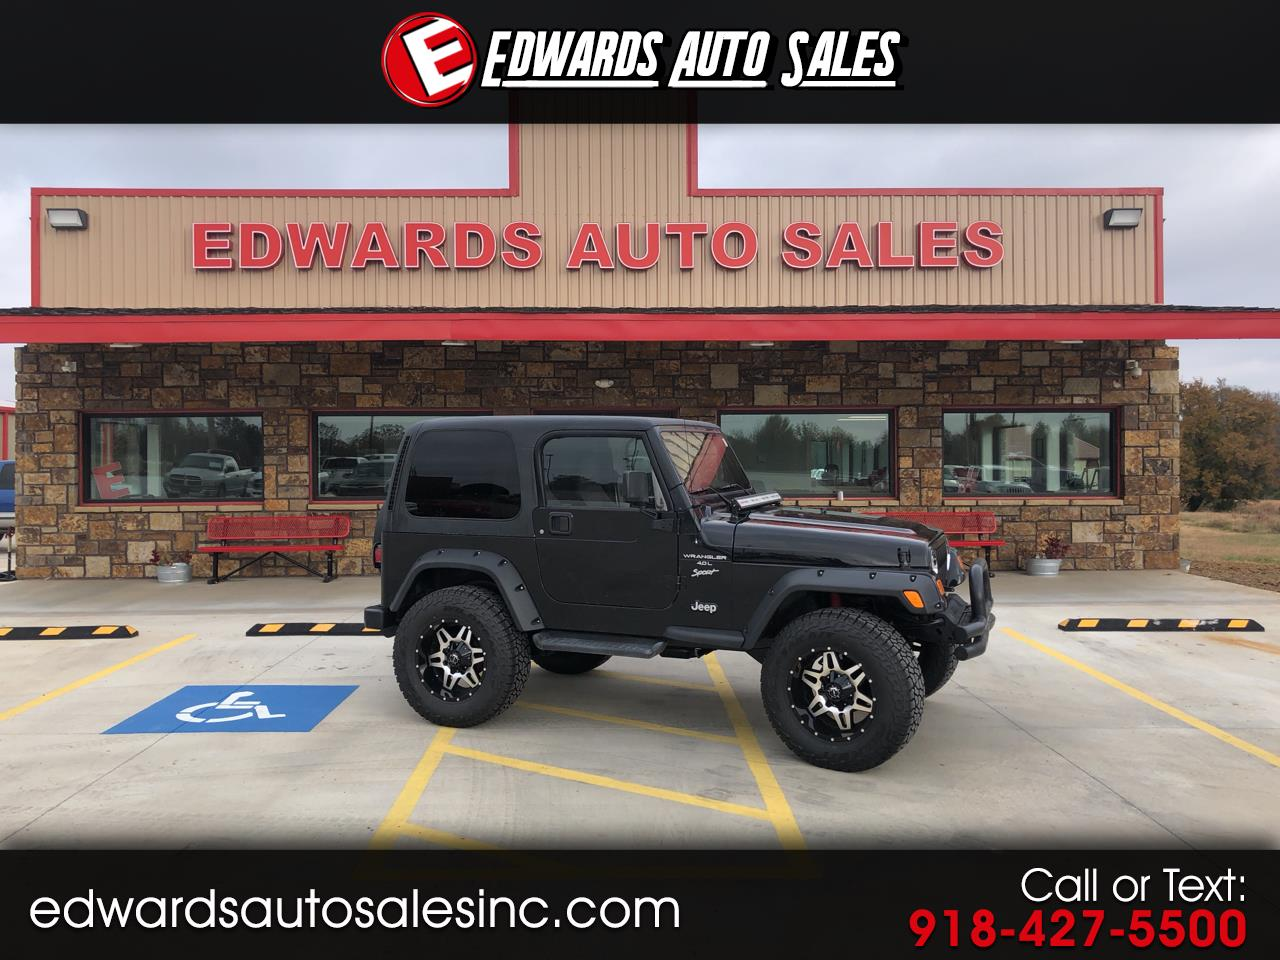 2001 Jeep Wrangler 4WD 2dr Sport